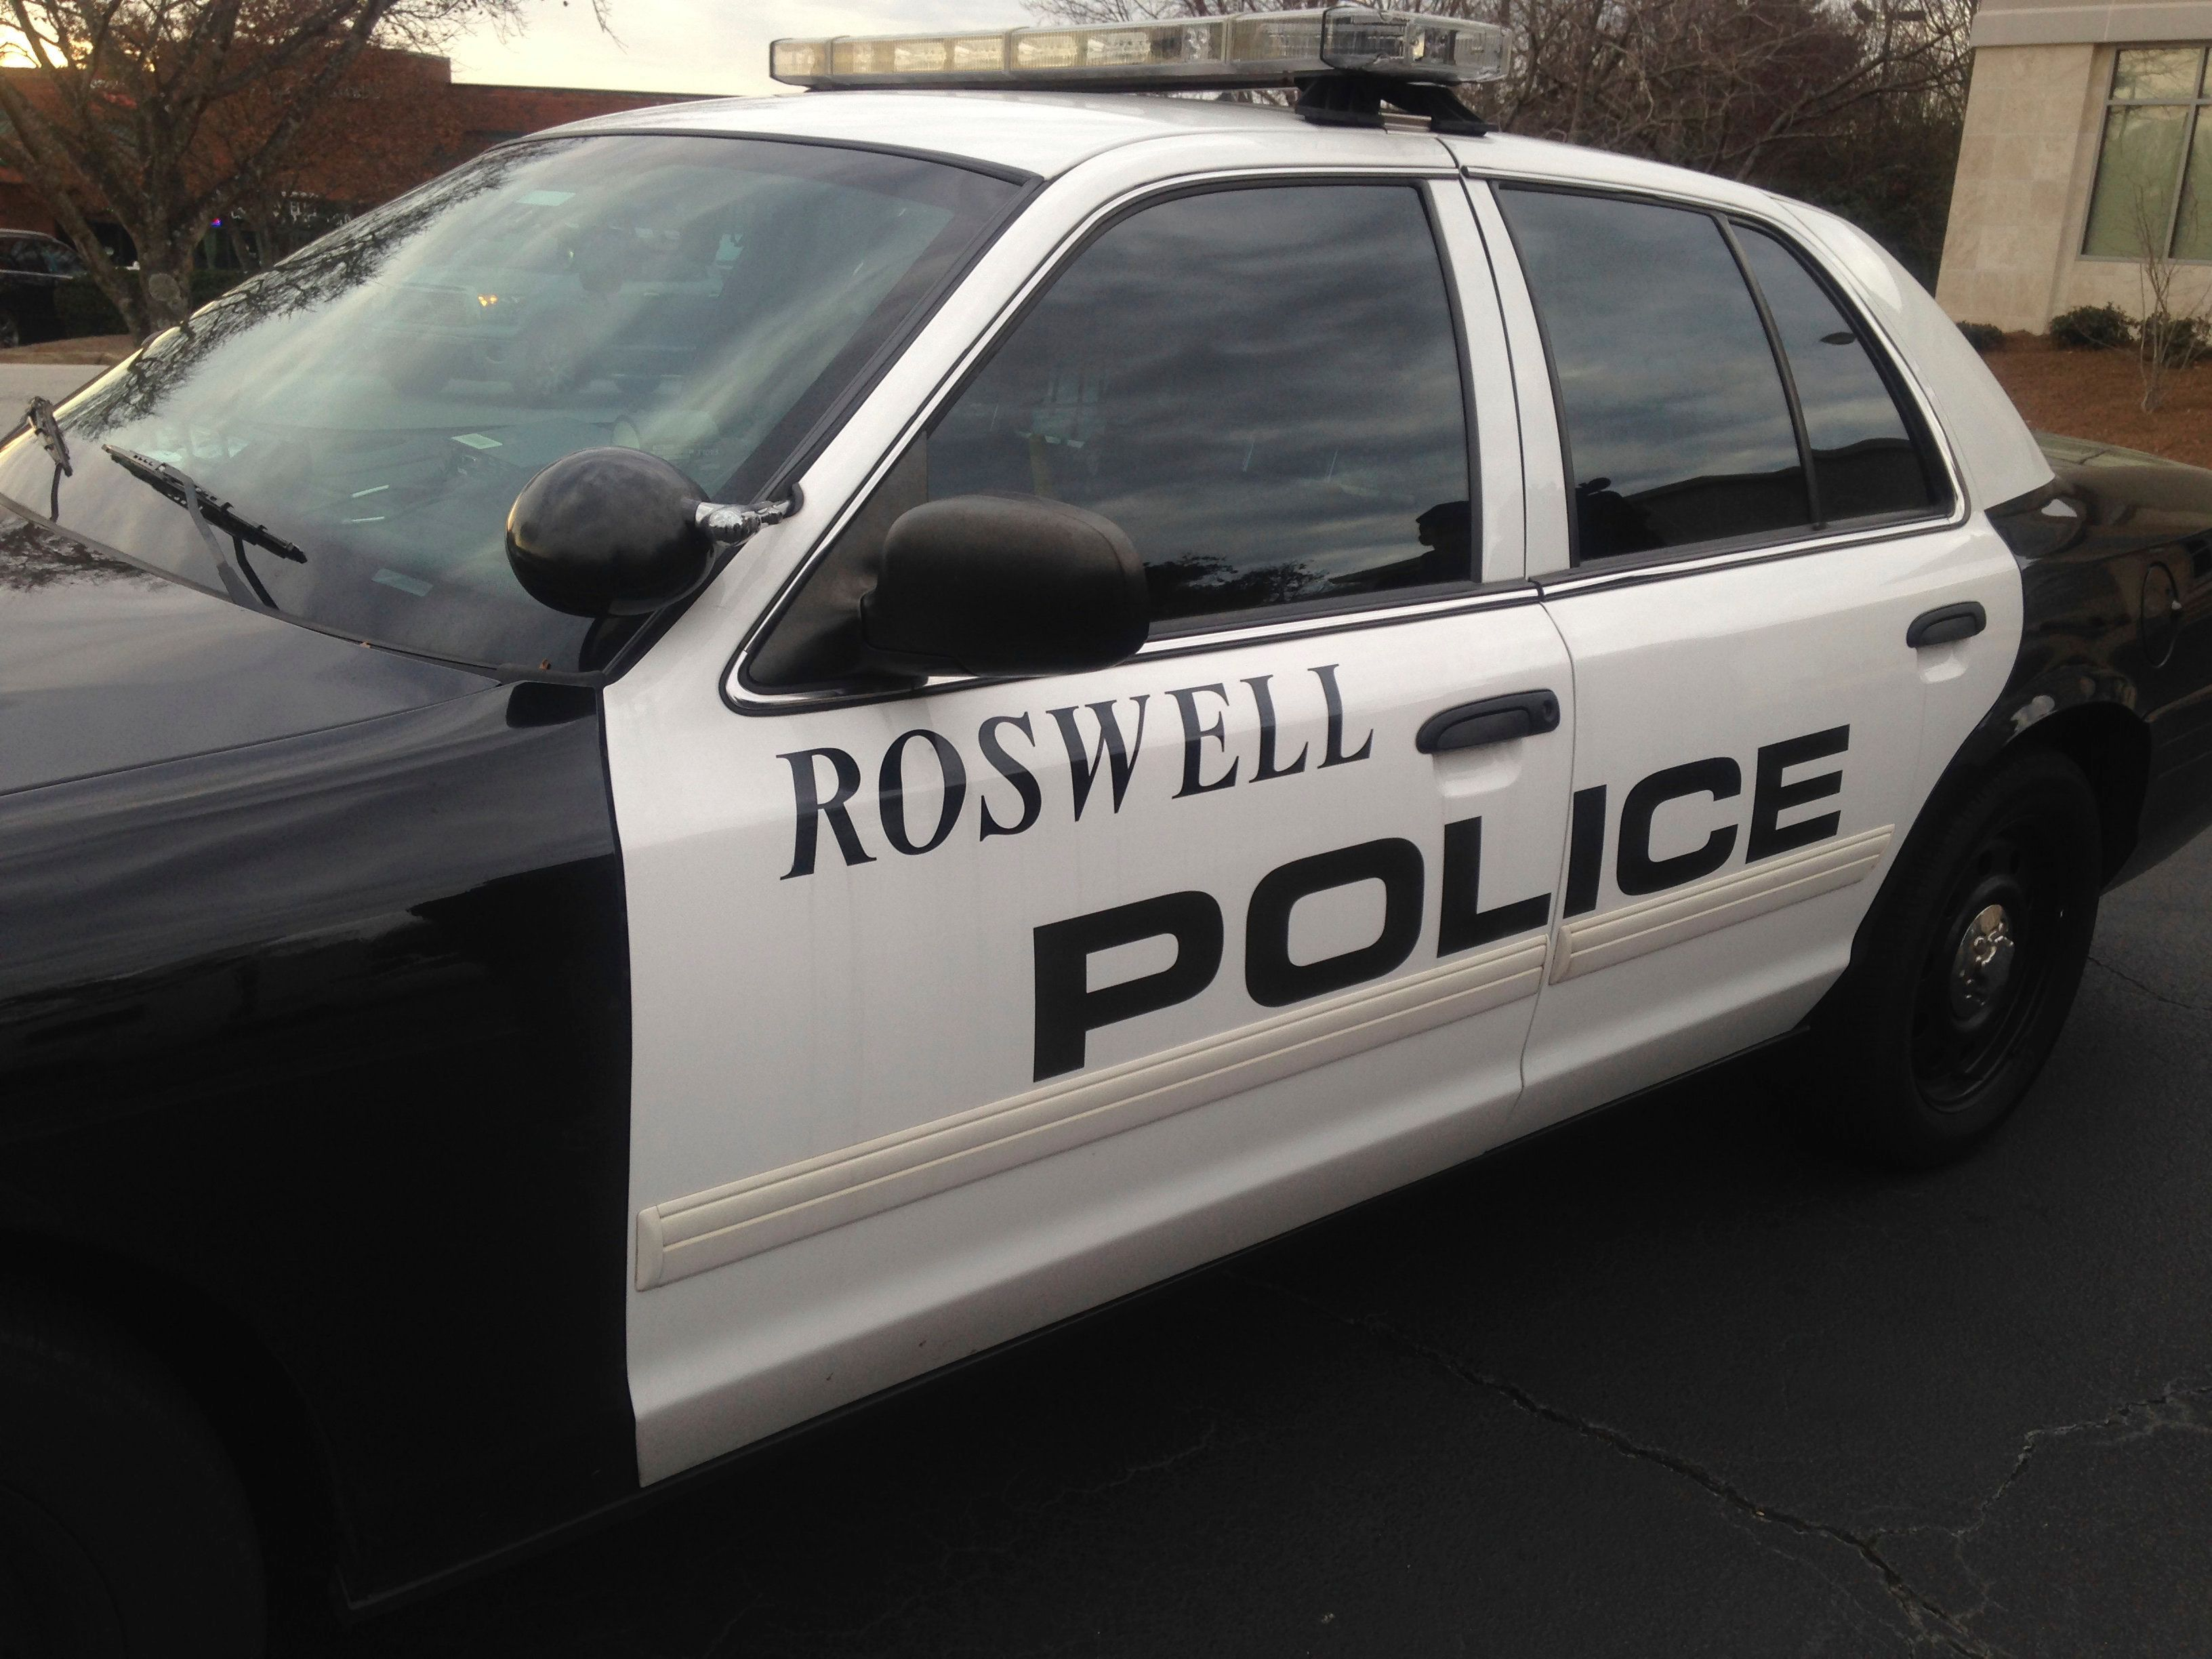 ROSWELL, GA - JANUARY 31: Roswell police car seen near North Fulton Hospital on January 31, 2015 in Roswell, Georgia. Bobbi Kristina Brown, daughter of Whitney Houston and Bobby Brown, was reportedly found unconscious in her bathtub on January 31, 2015. (Photo by John E. Davidson/Getty Images)